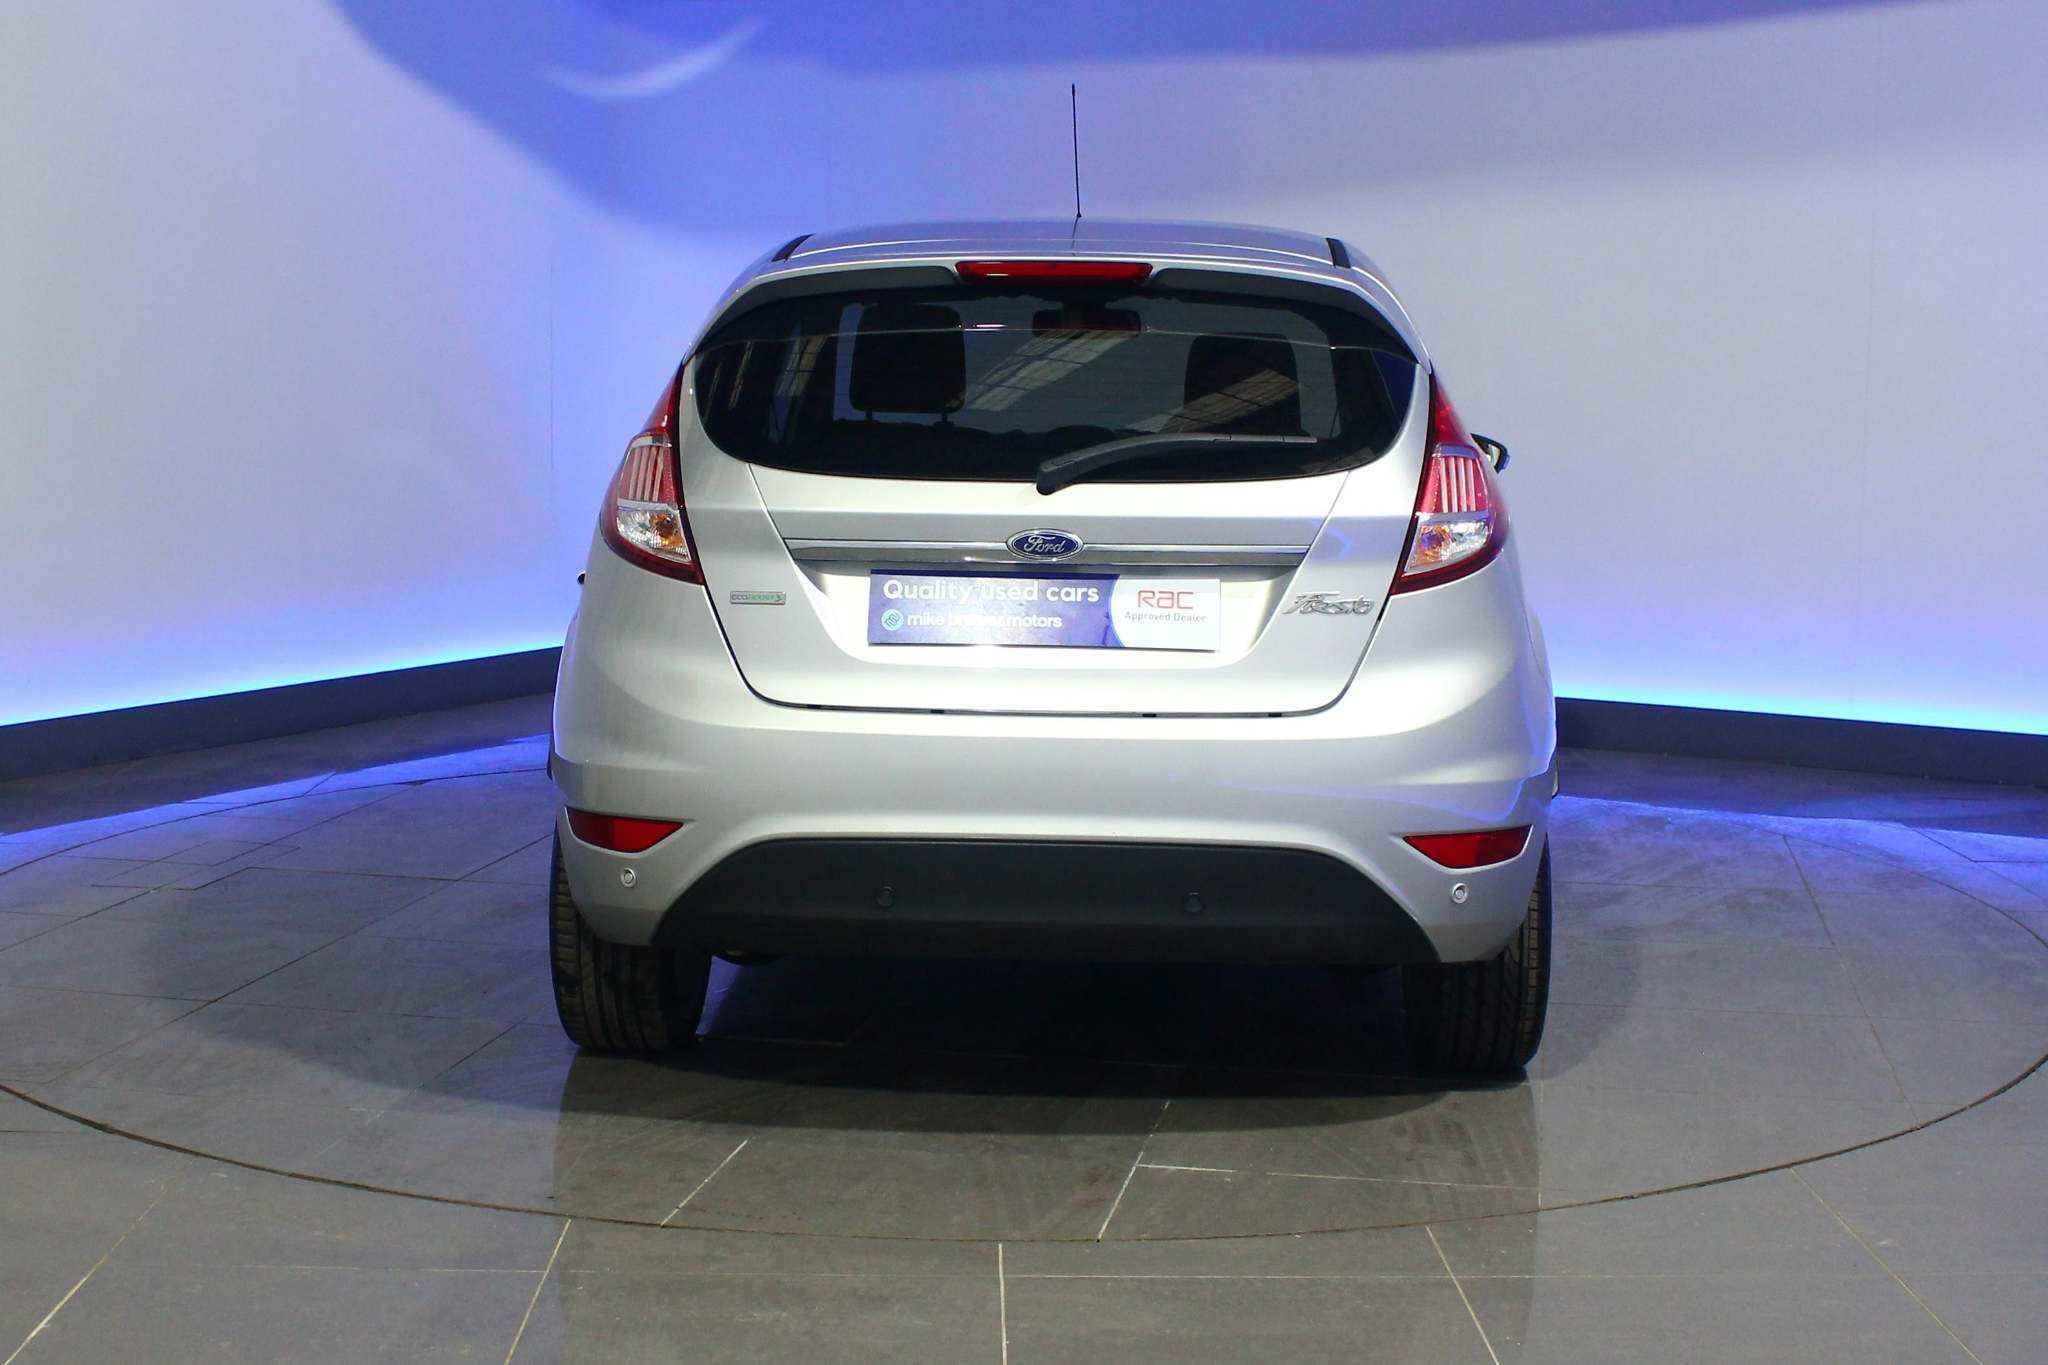 Used Ford Fiesta 1.0 T Ecoboost Titanium (s/s) 3dr